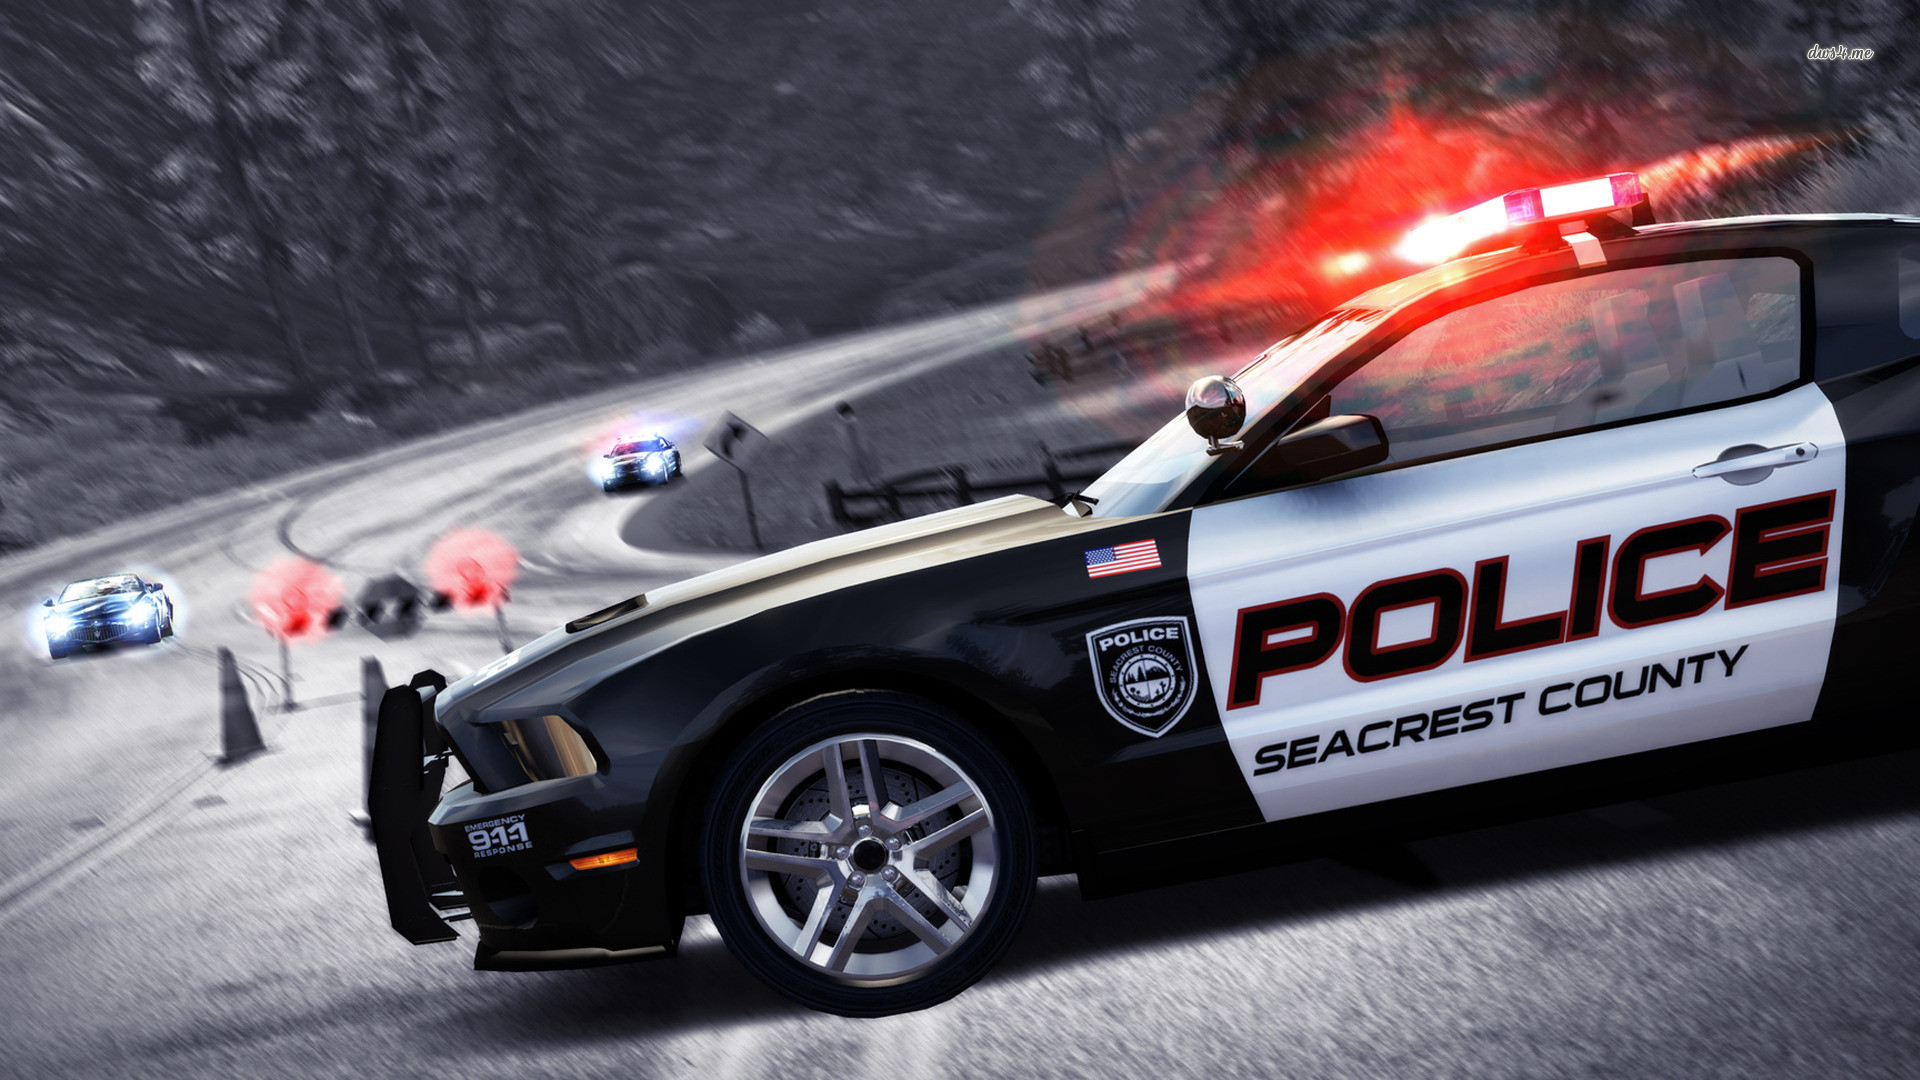 1920x1080 Speed - Hot Pursuit police car wallpaper - Game wallpapers - #13119 .